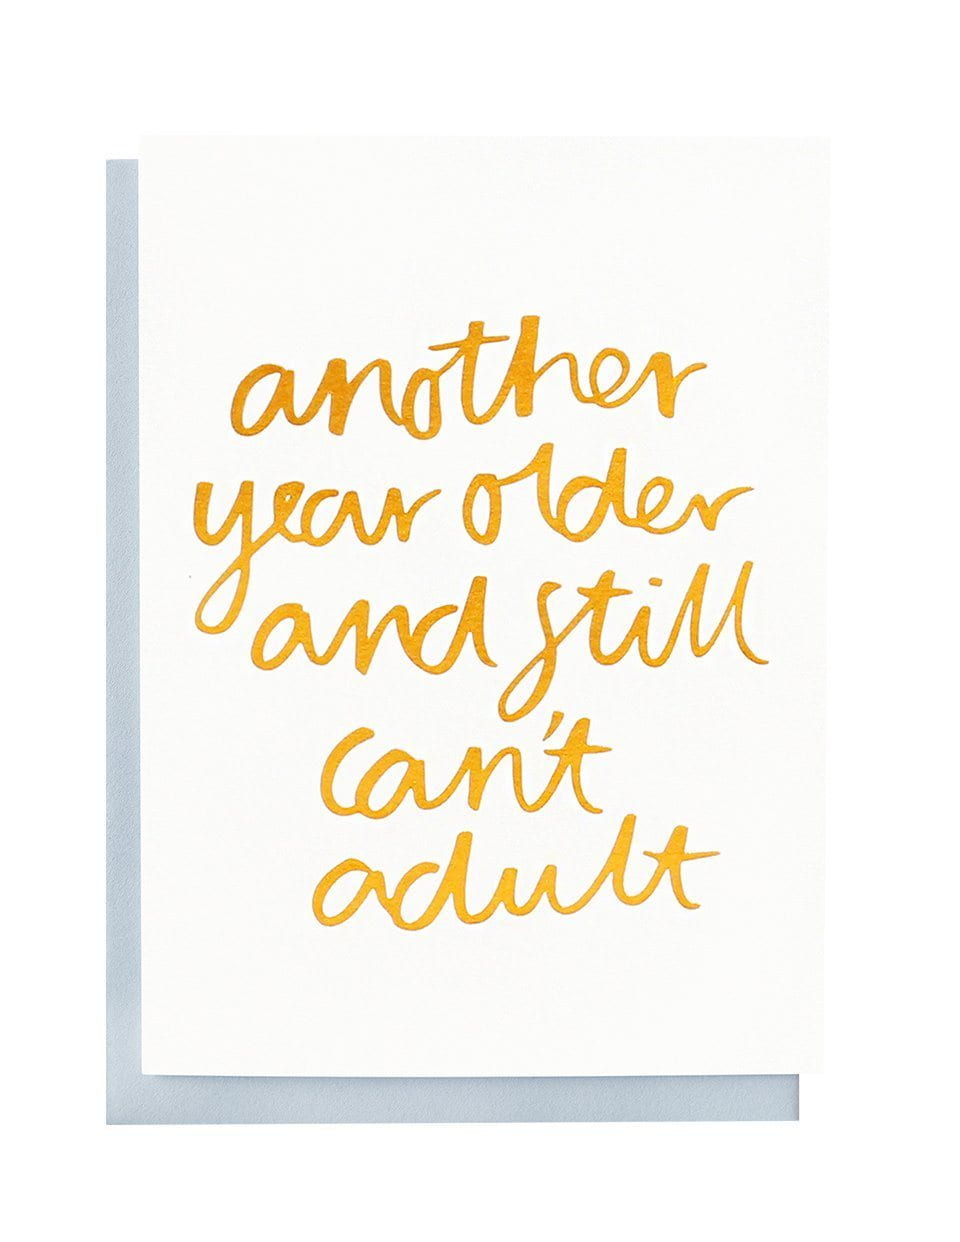 Still Can't Adult foiled greeting card | Blushing Confetti